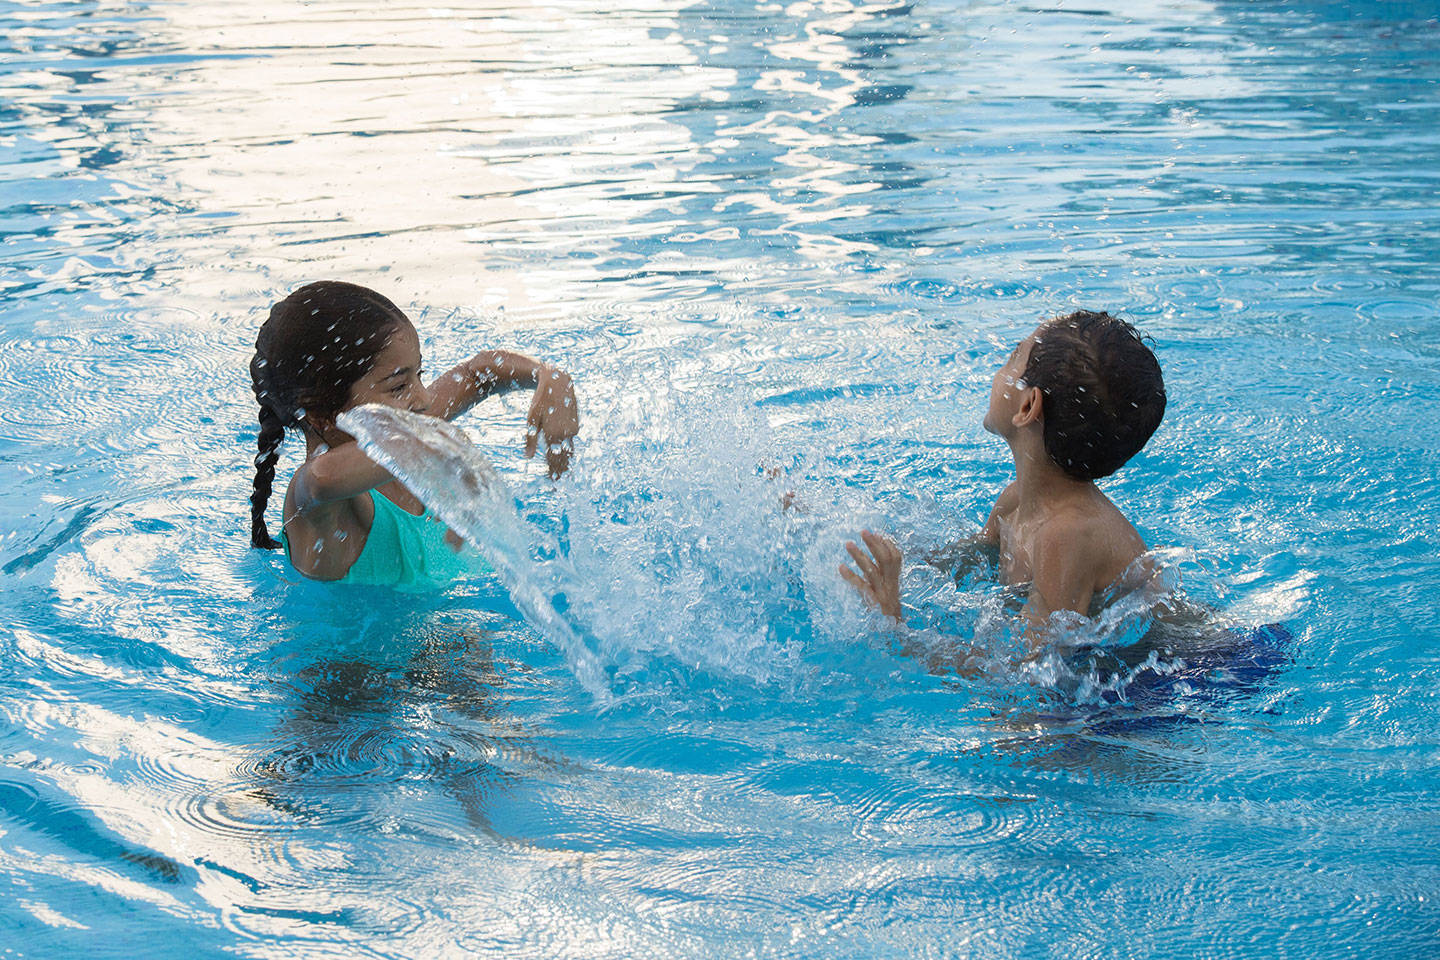 Kids splashing in pool at Jumeirah Beach Hotel